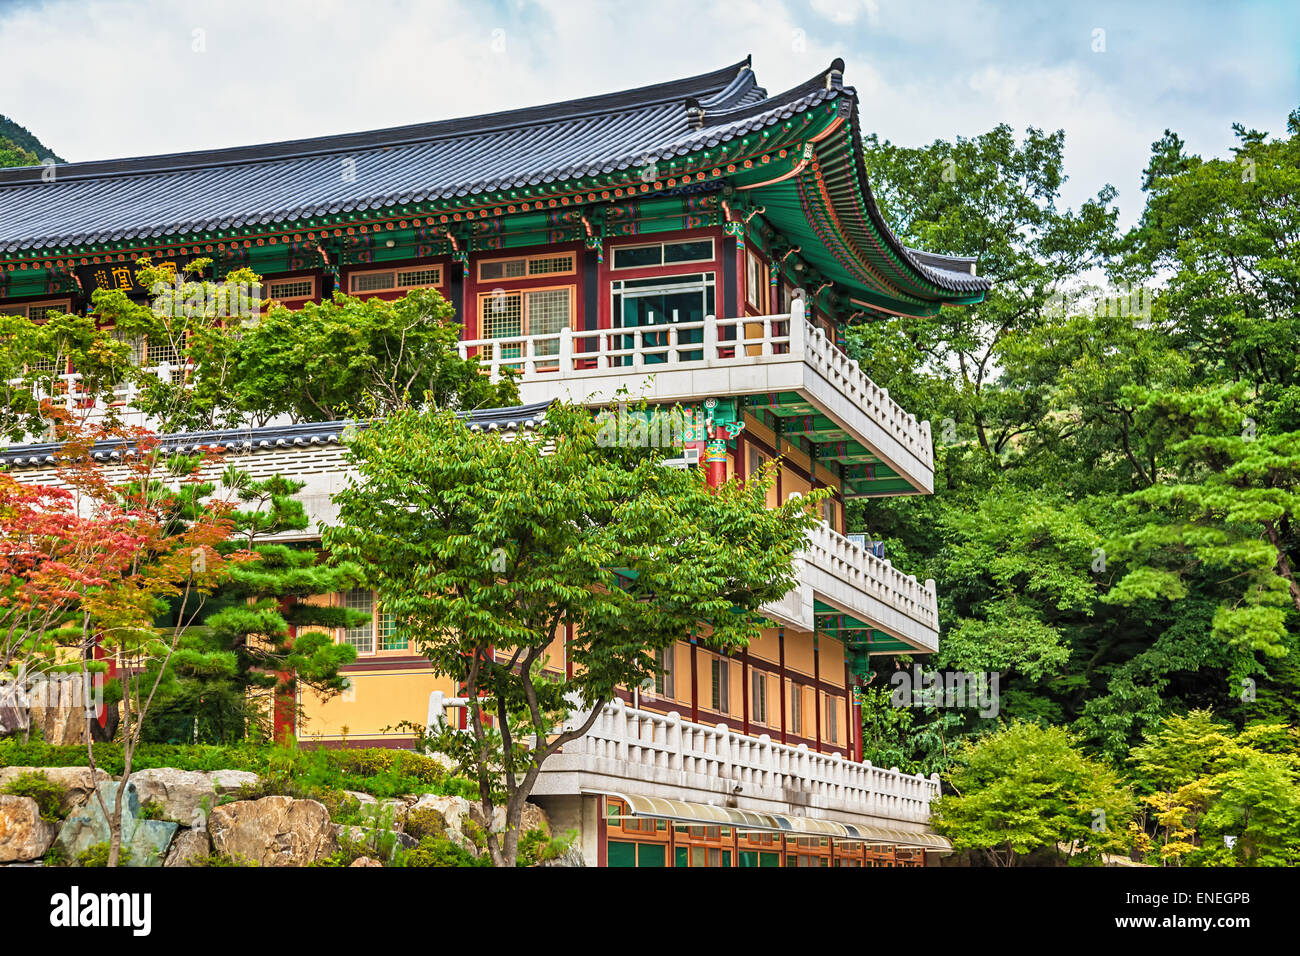 Traditional Korean Architecture Old Building Or Monks Temple In South Korea